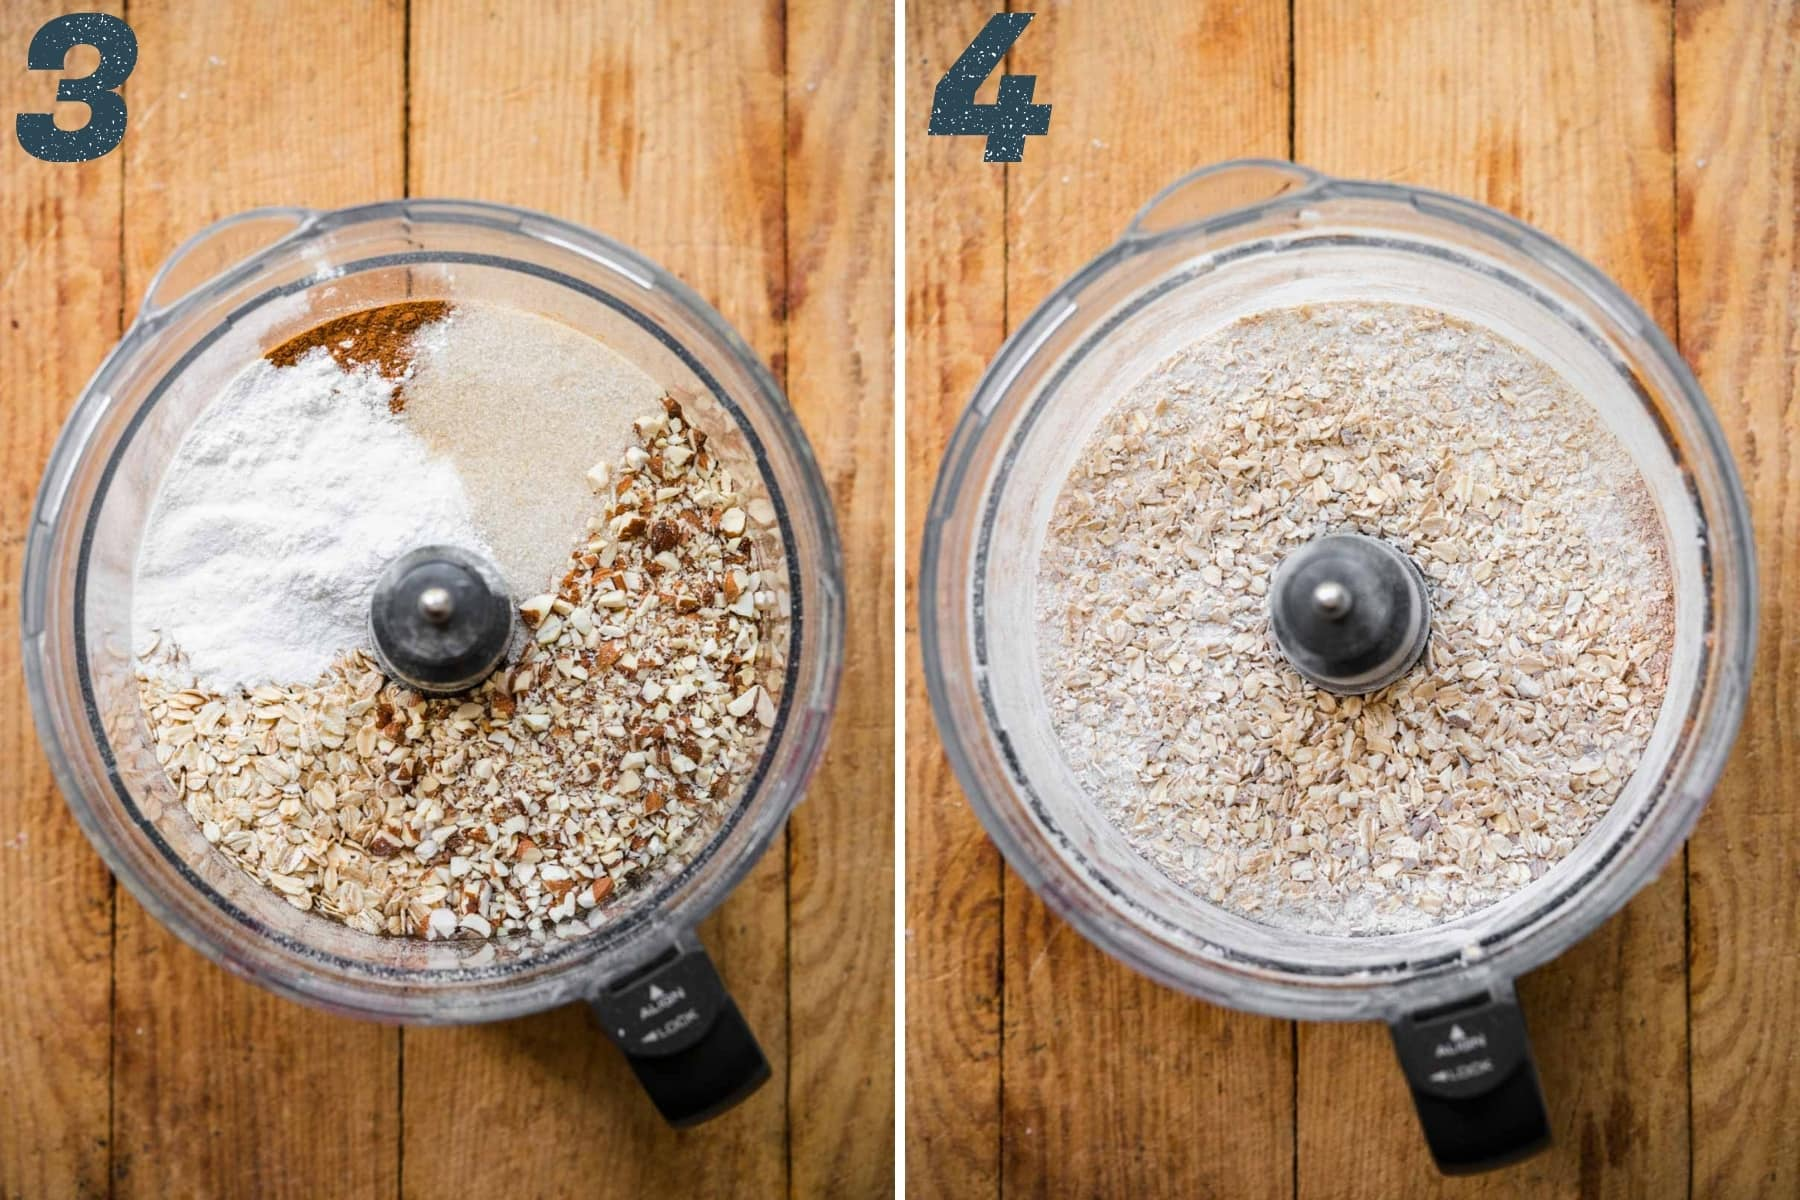 before and after pulsing together ingredients for oat crust in food processor.